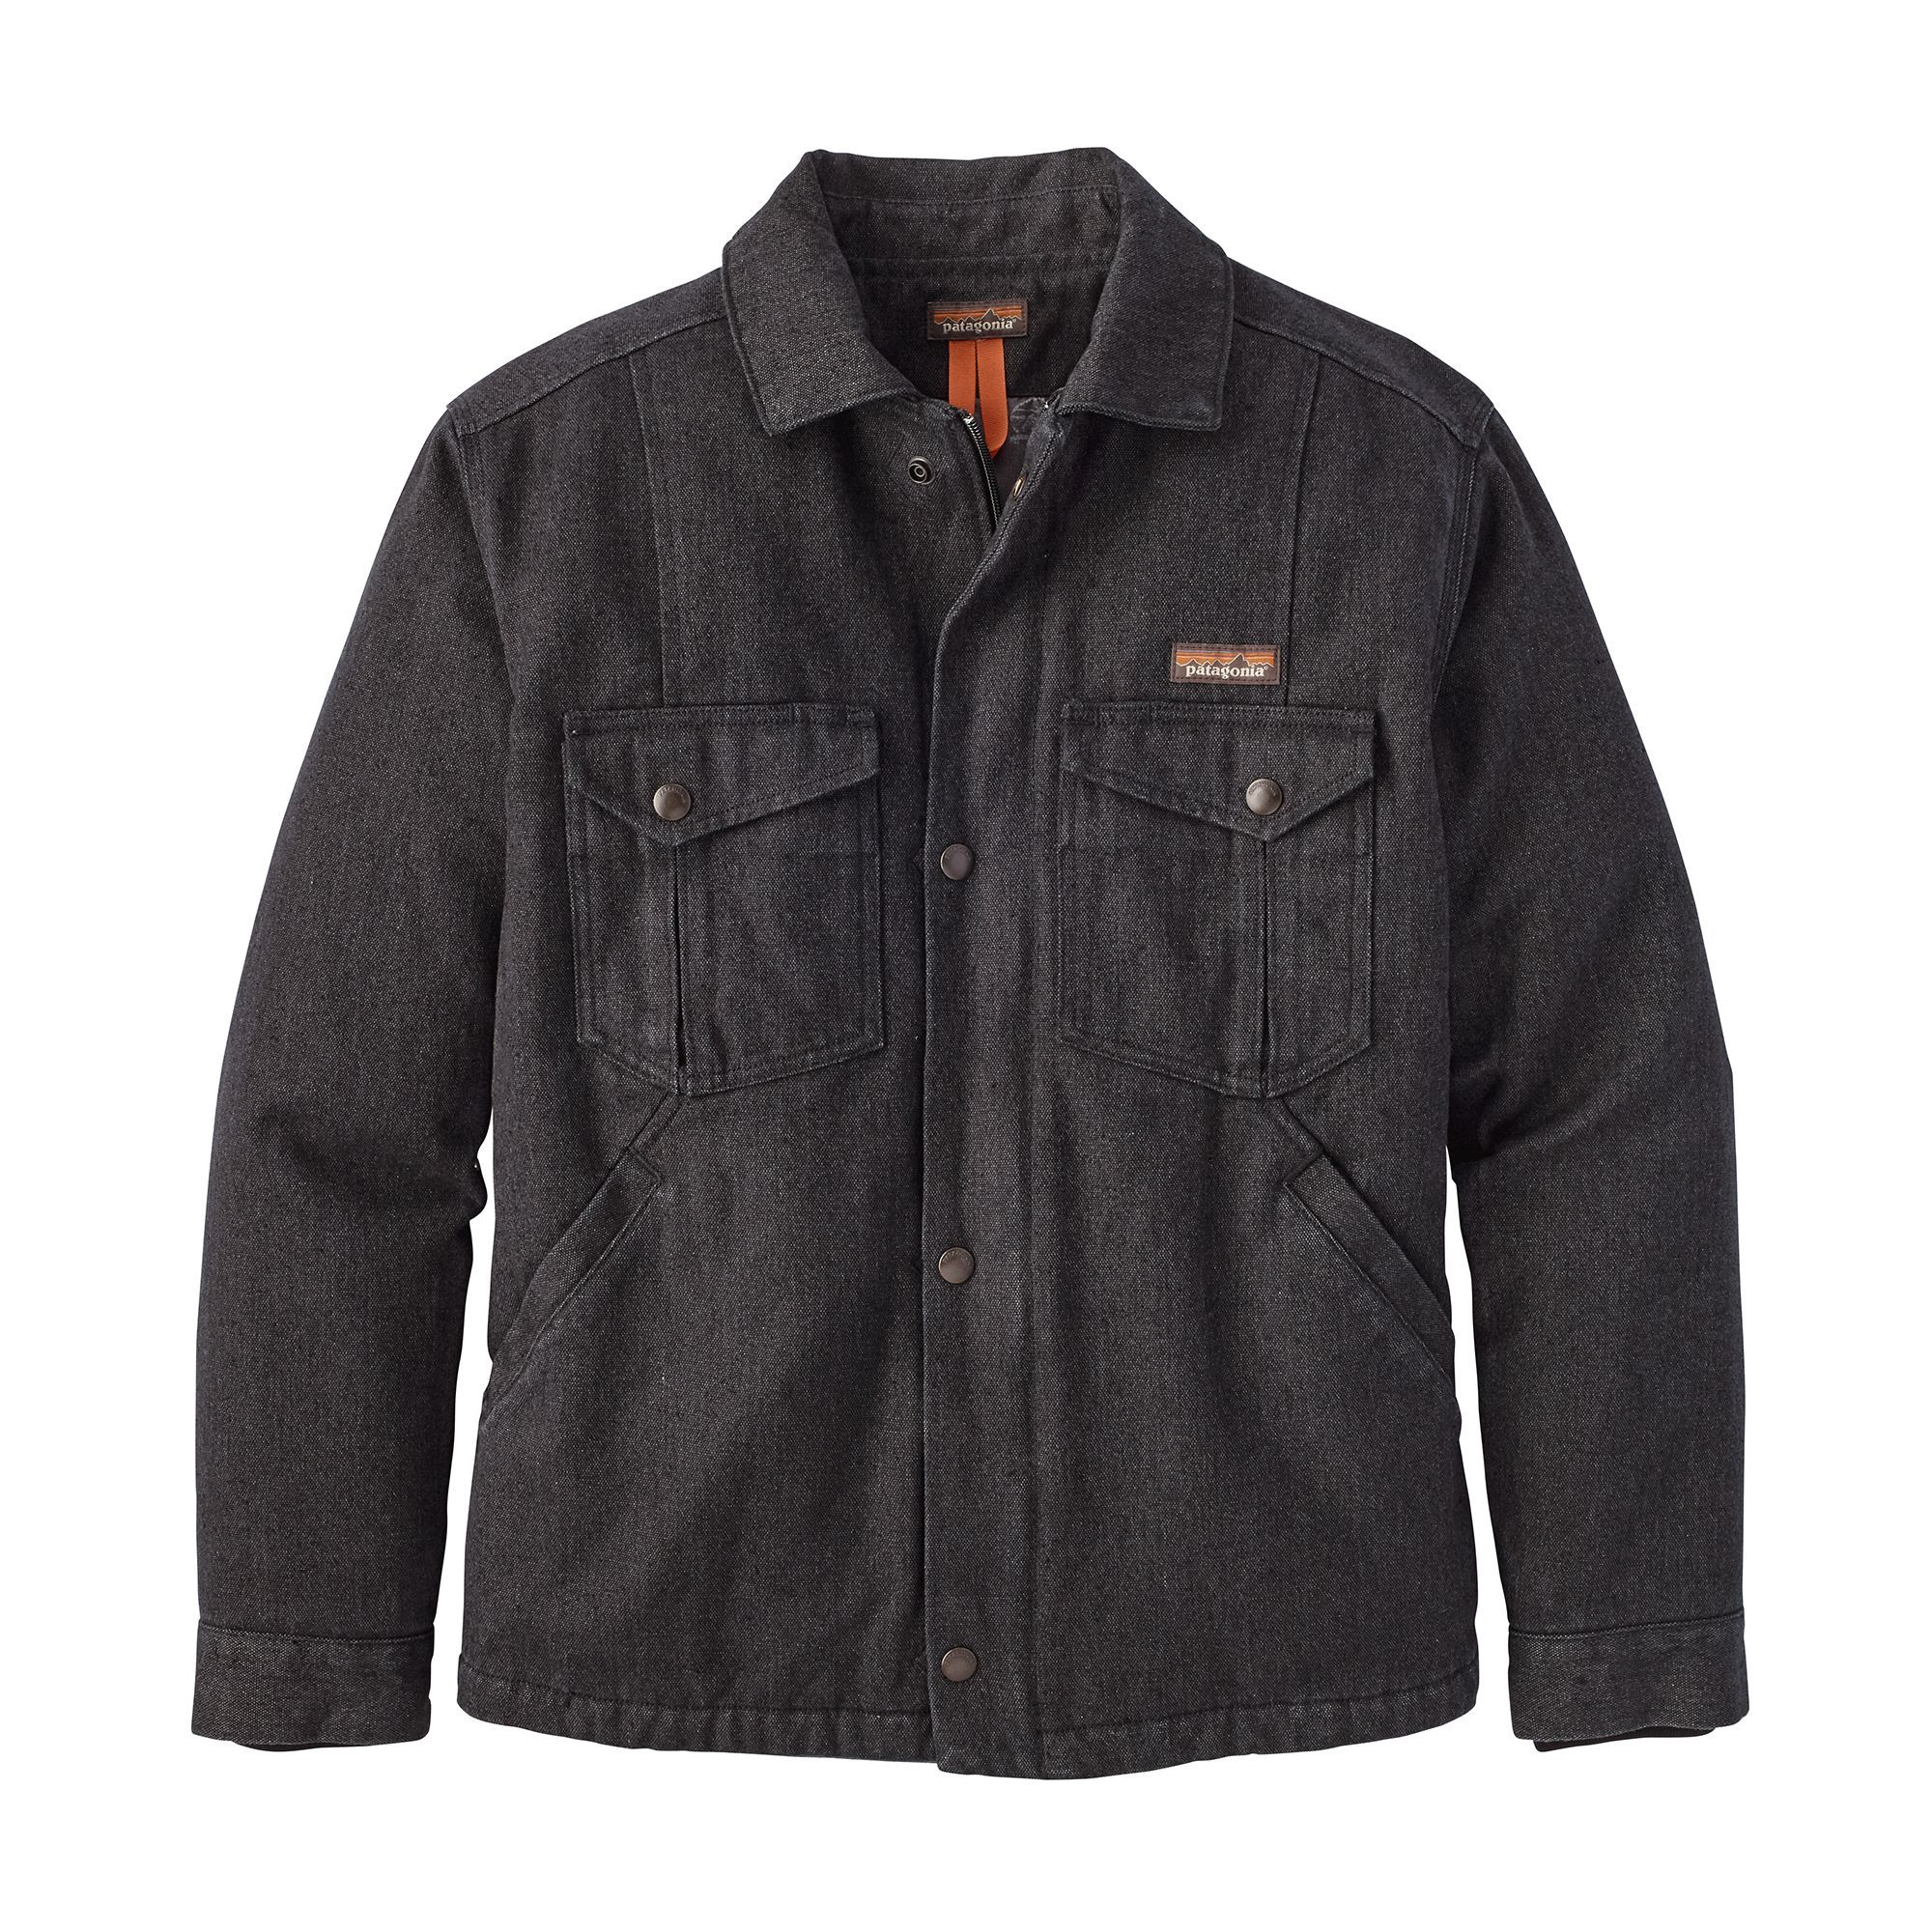 769a53f768b93 Men's Iron Forge Hemp® Canvas Ranch Jacket | Details | Mens outdoor ...